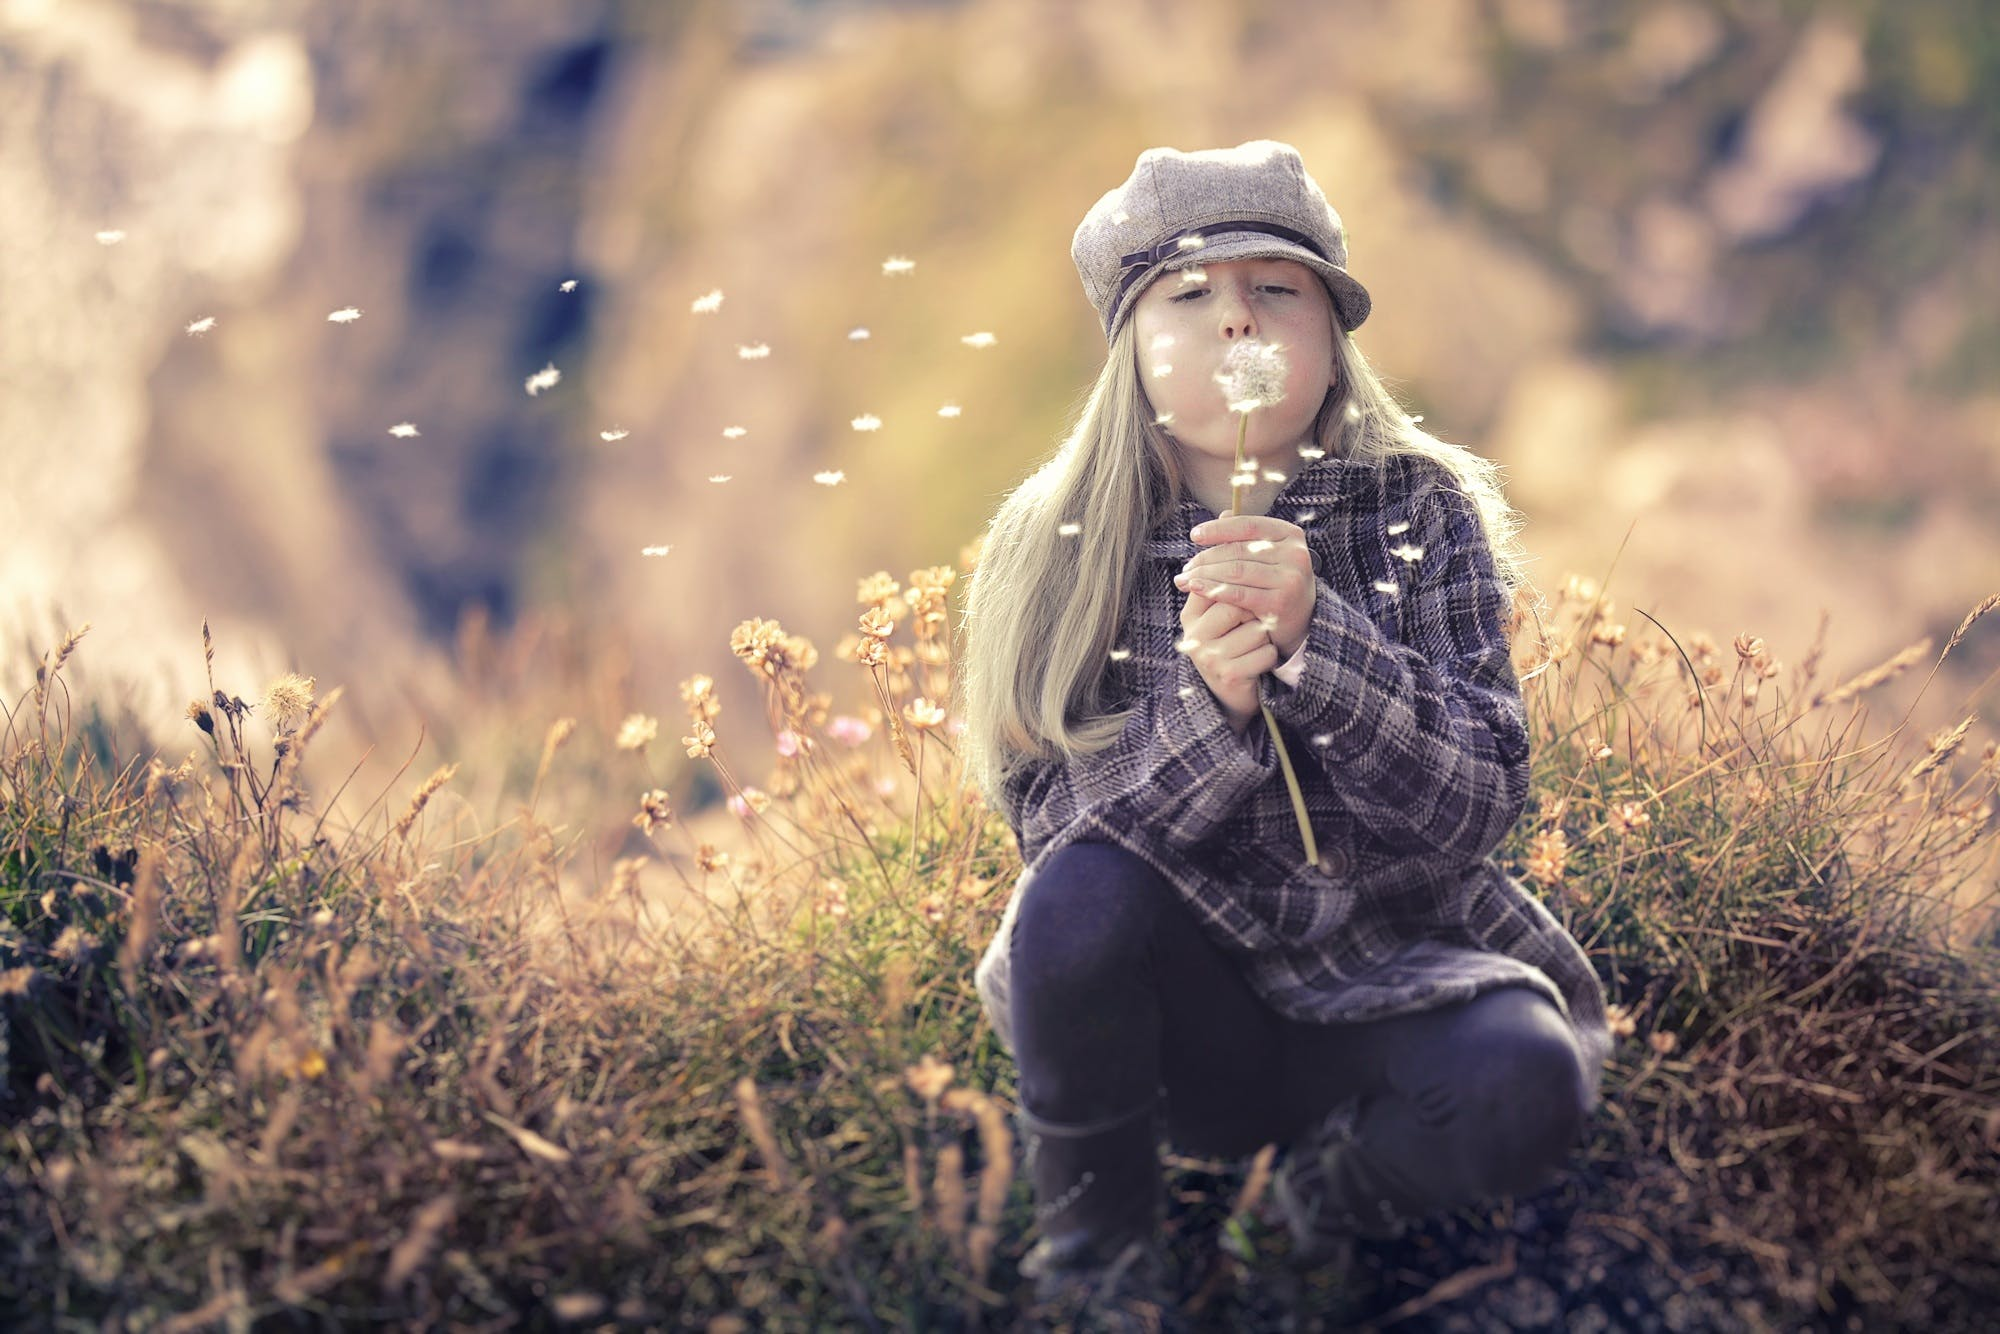 Girl Blowing Bubbles in Shallow Photo